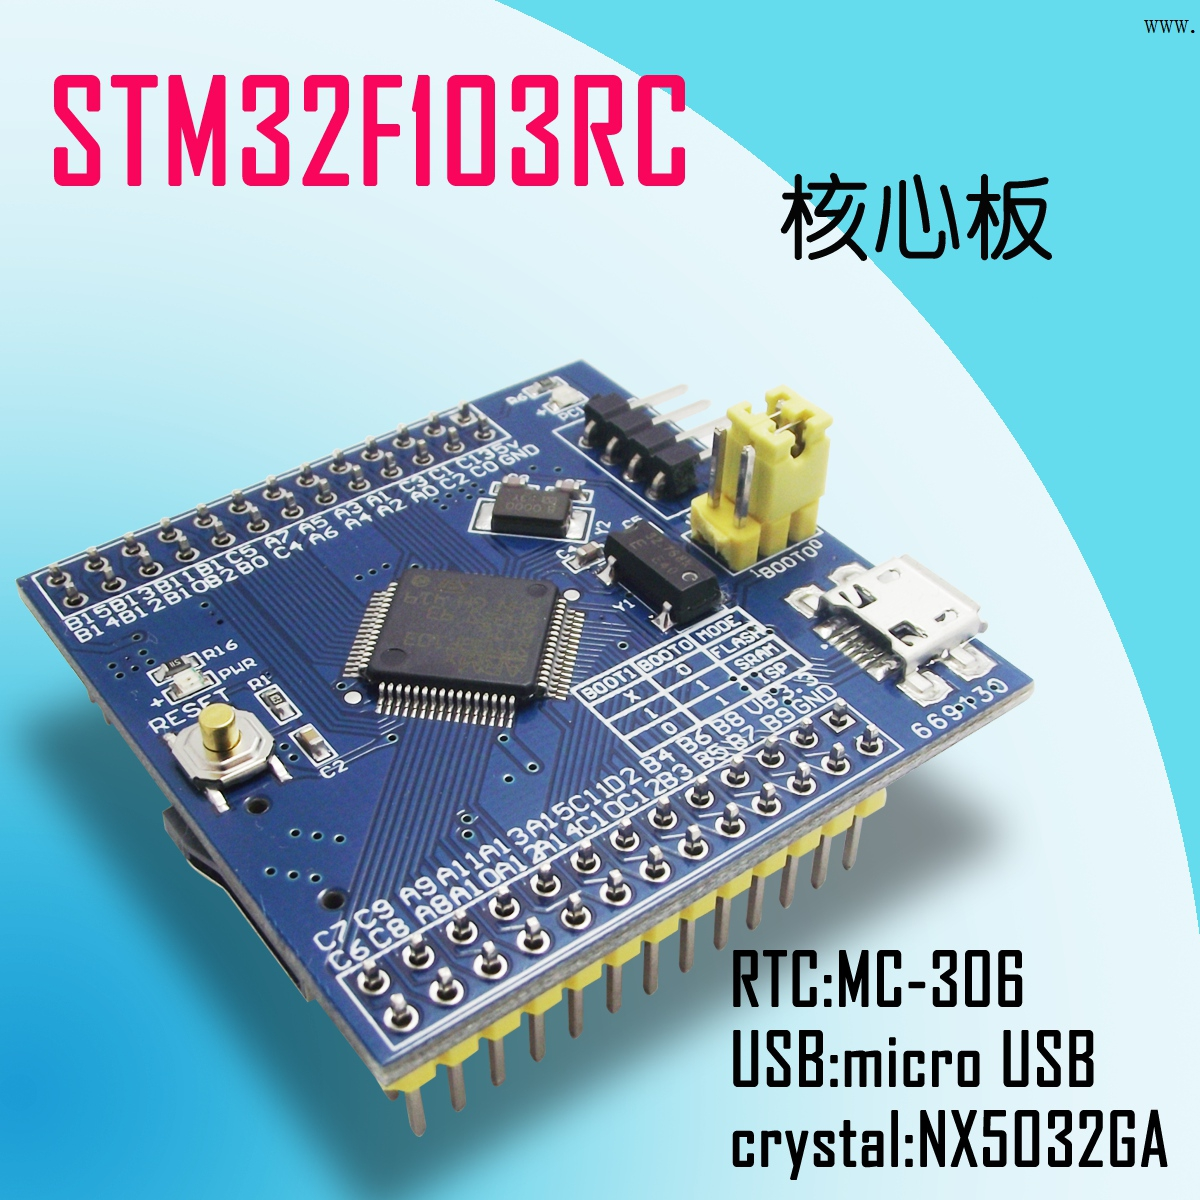 STM32F103RCT6 minimum system core board Cortex-M3 STM32 ARM development board stm32 development board core board minimum system board arm avr 51 stm32f103zet6